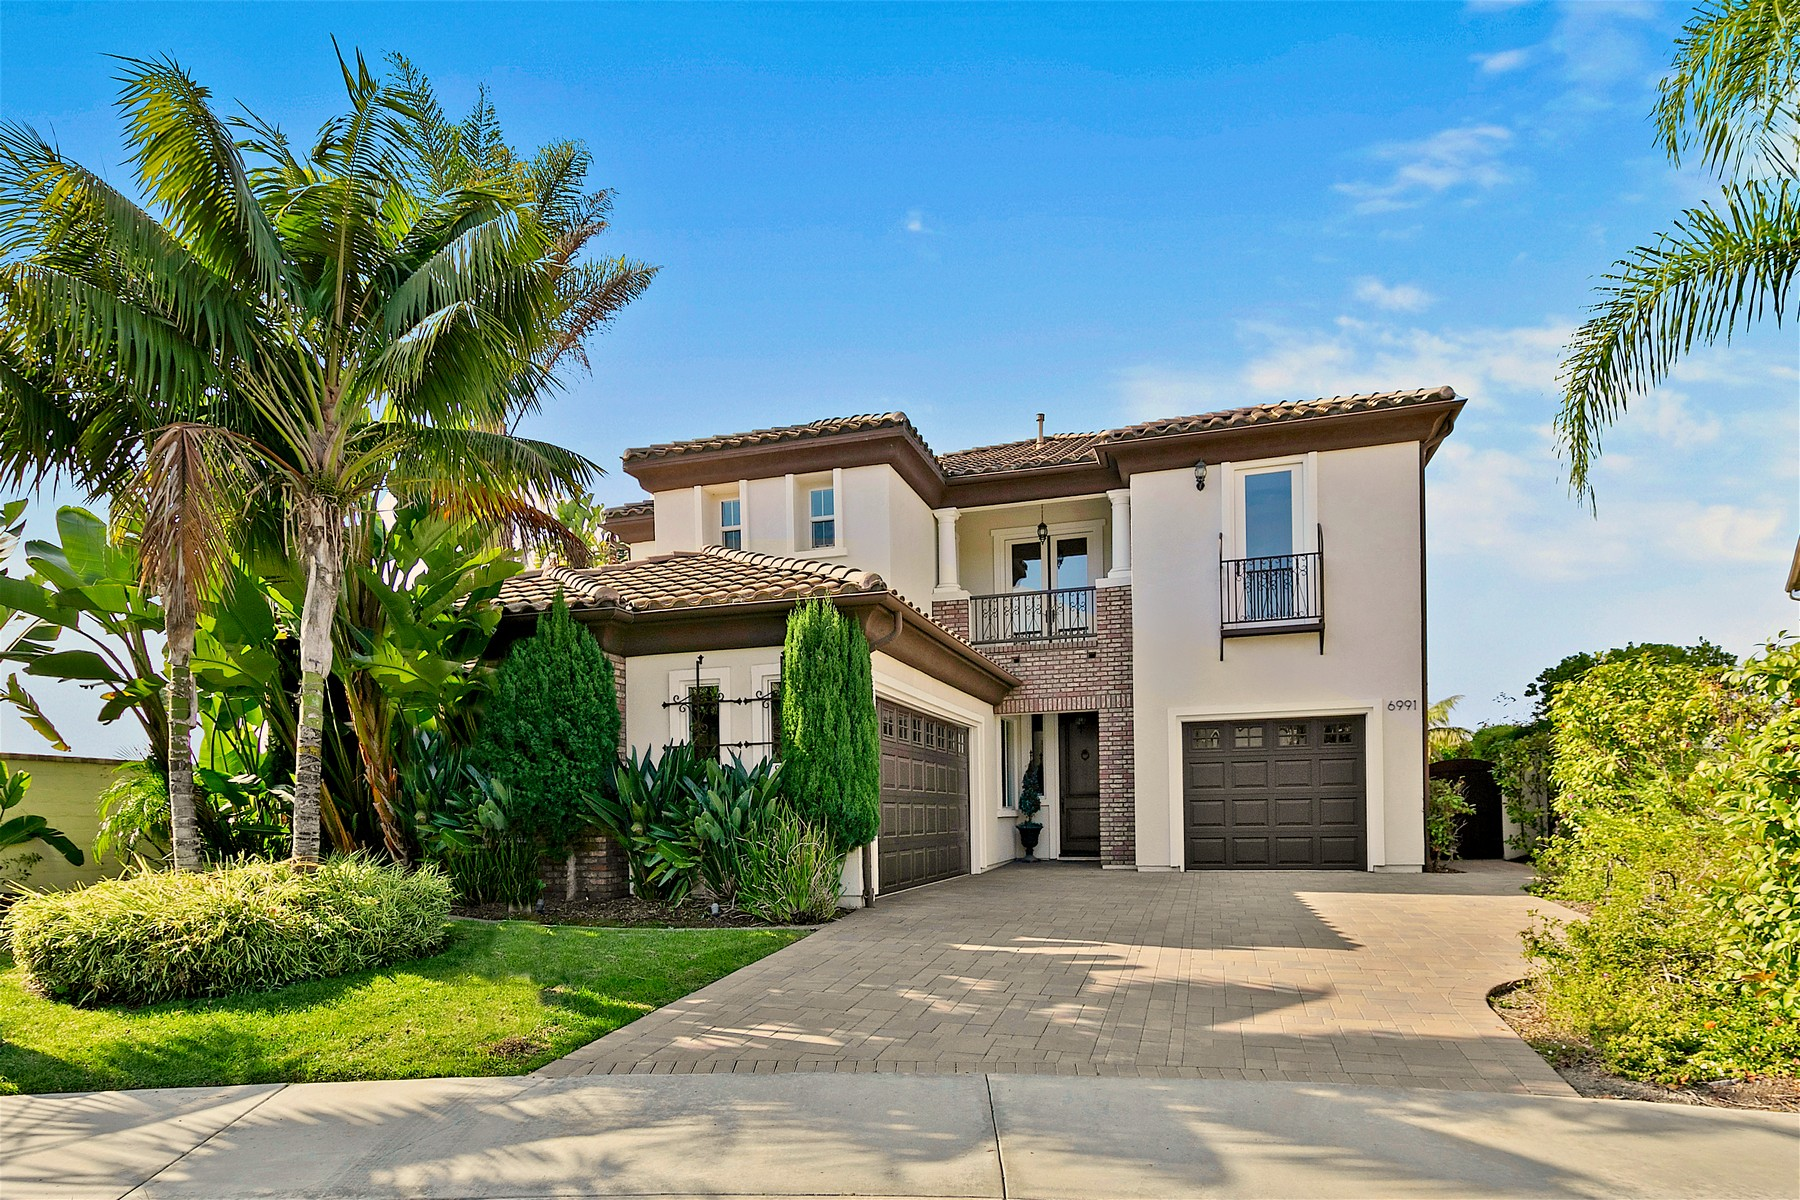 Single Family Homes for Sale at 6991 Bixbite Place Carlsbad, California 92009 United States